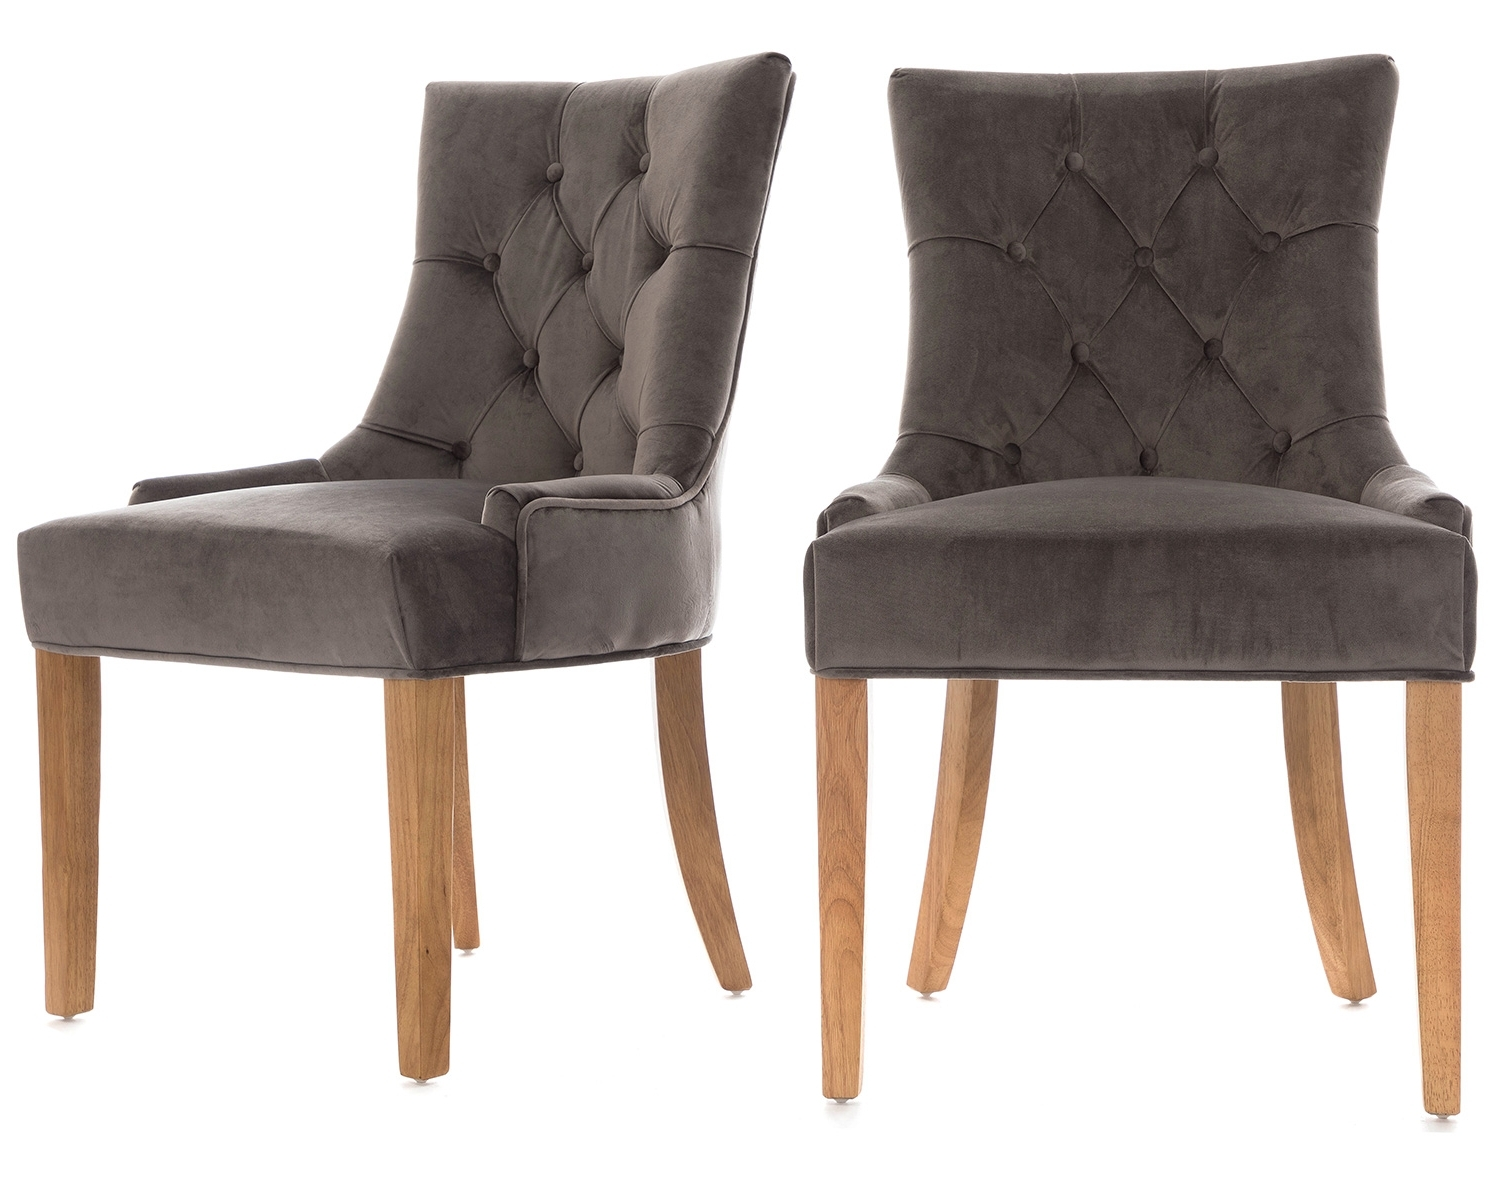 Favorite Button Back Dining Chairs Pertaining To Scoop Button Back Dining Chairs Grey Velvet & Oak Legs  (View 11 of 25)